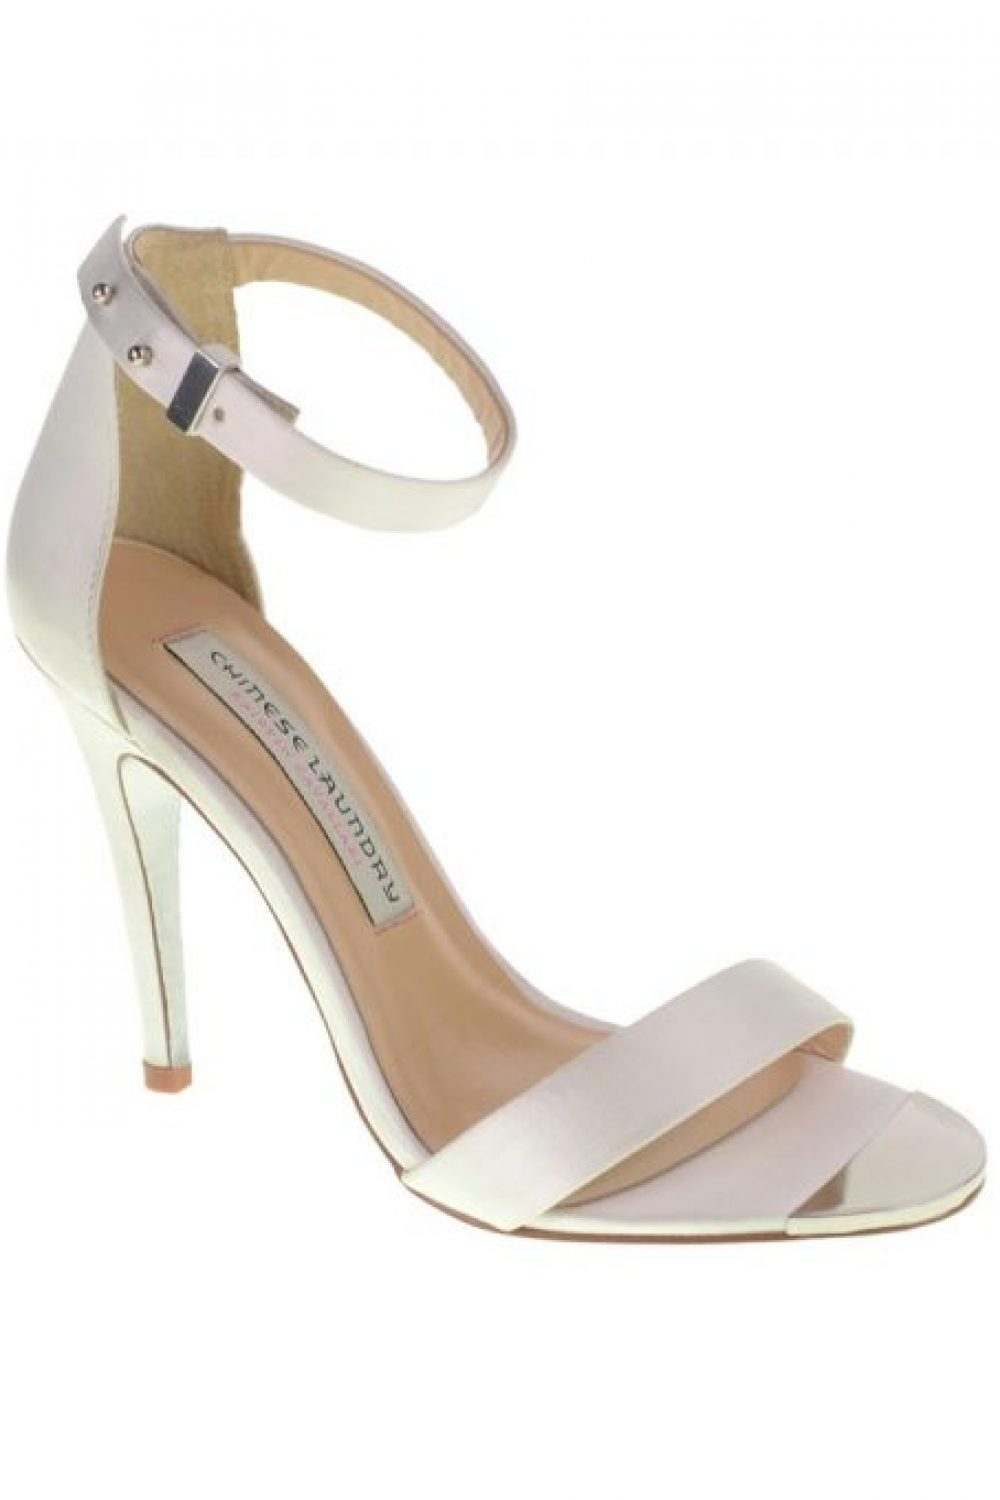 Kristin Cavallari's Wedding Shoes